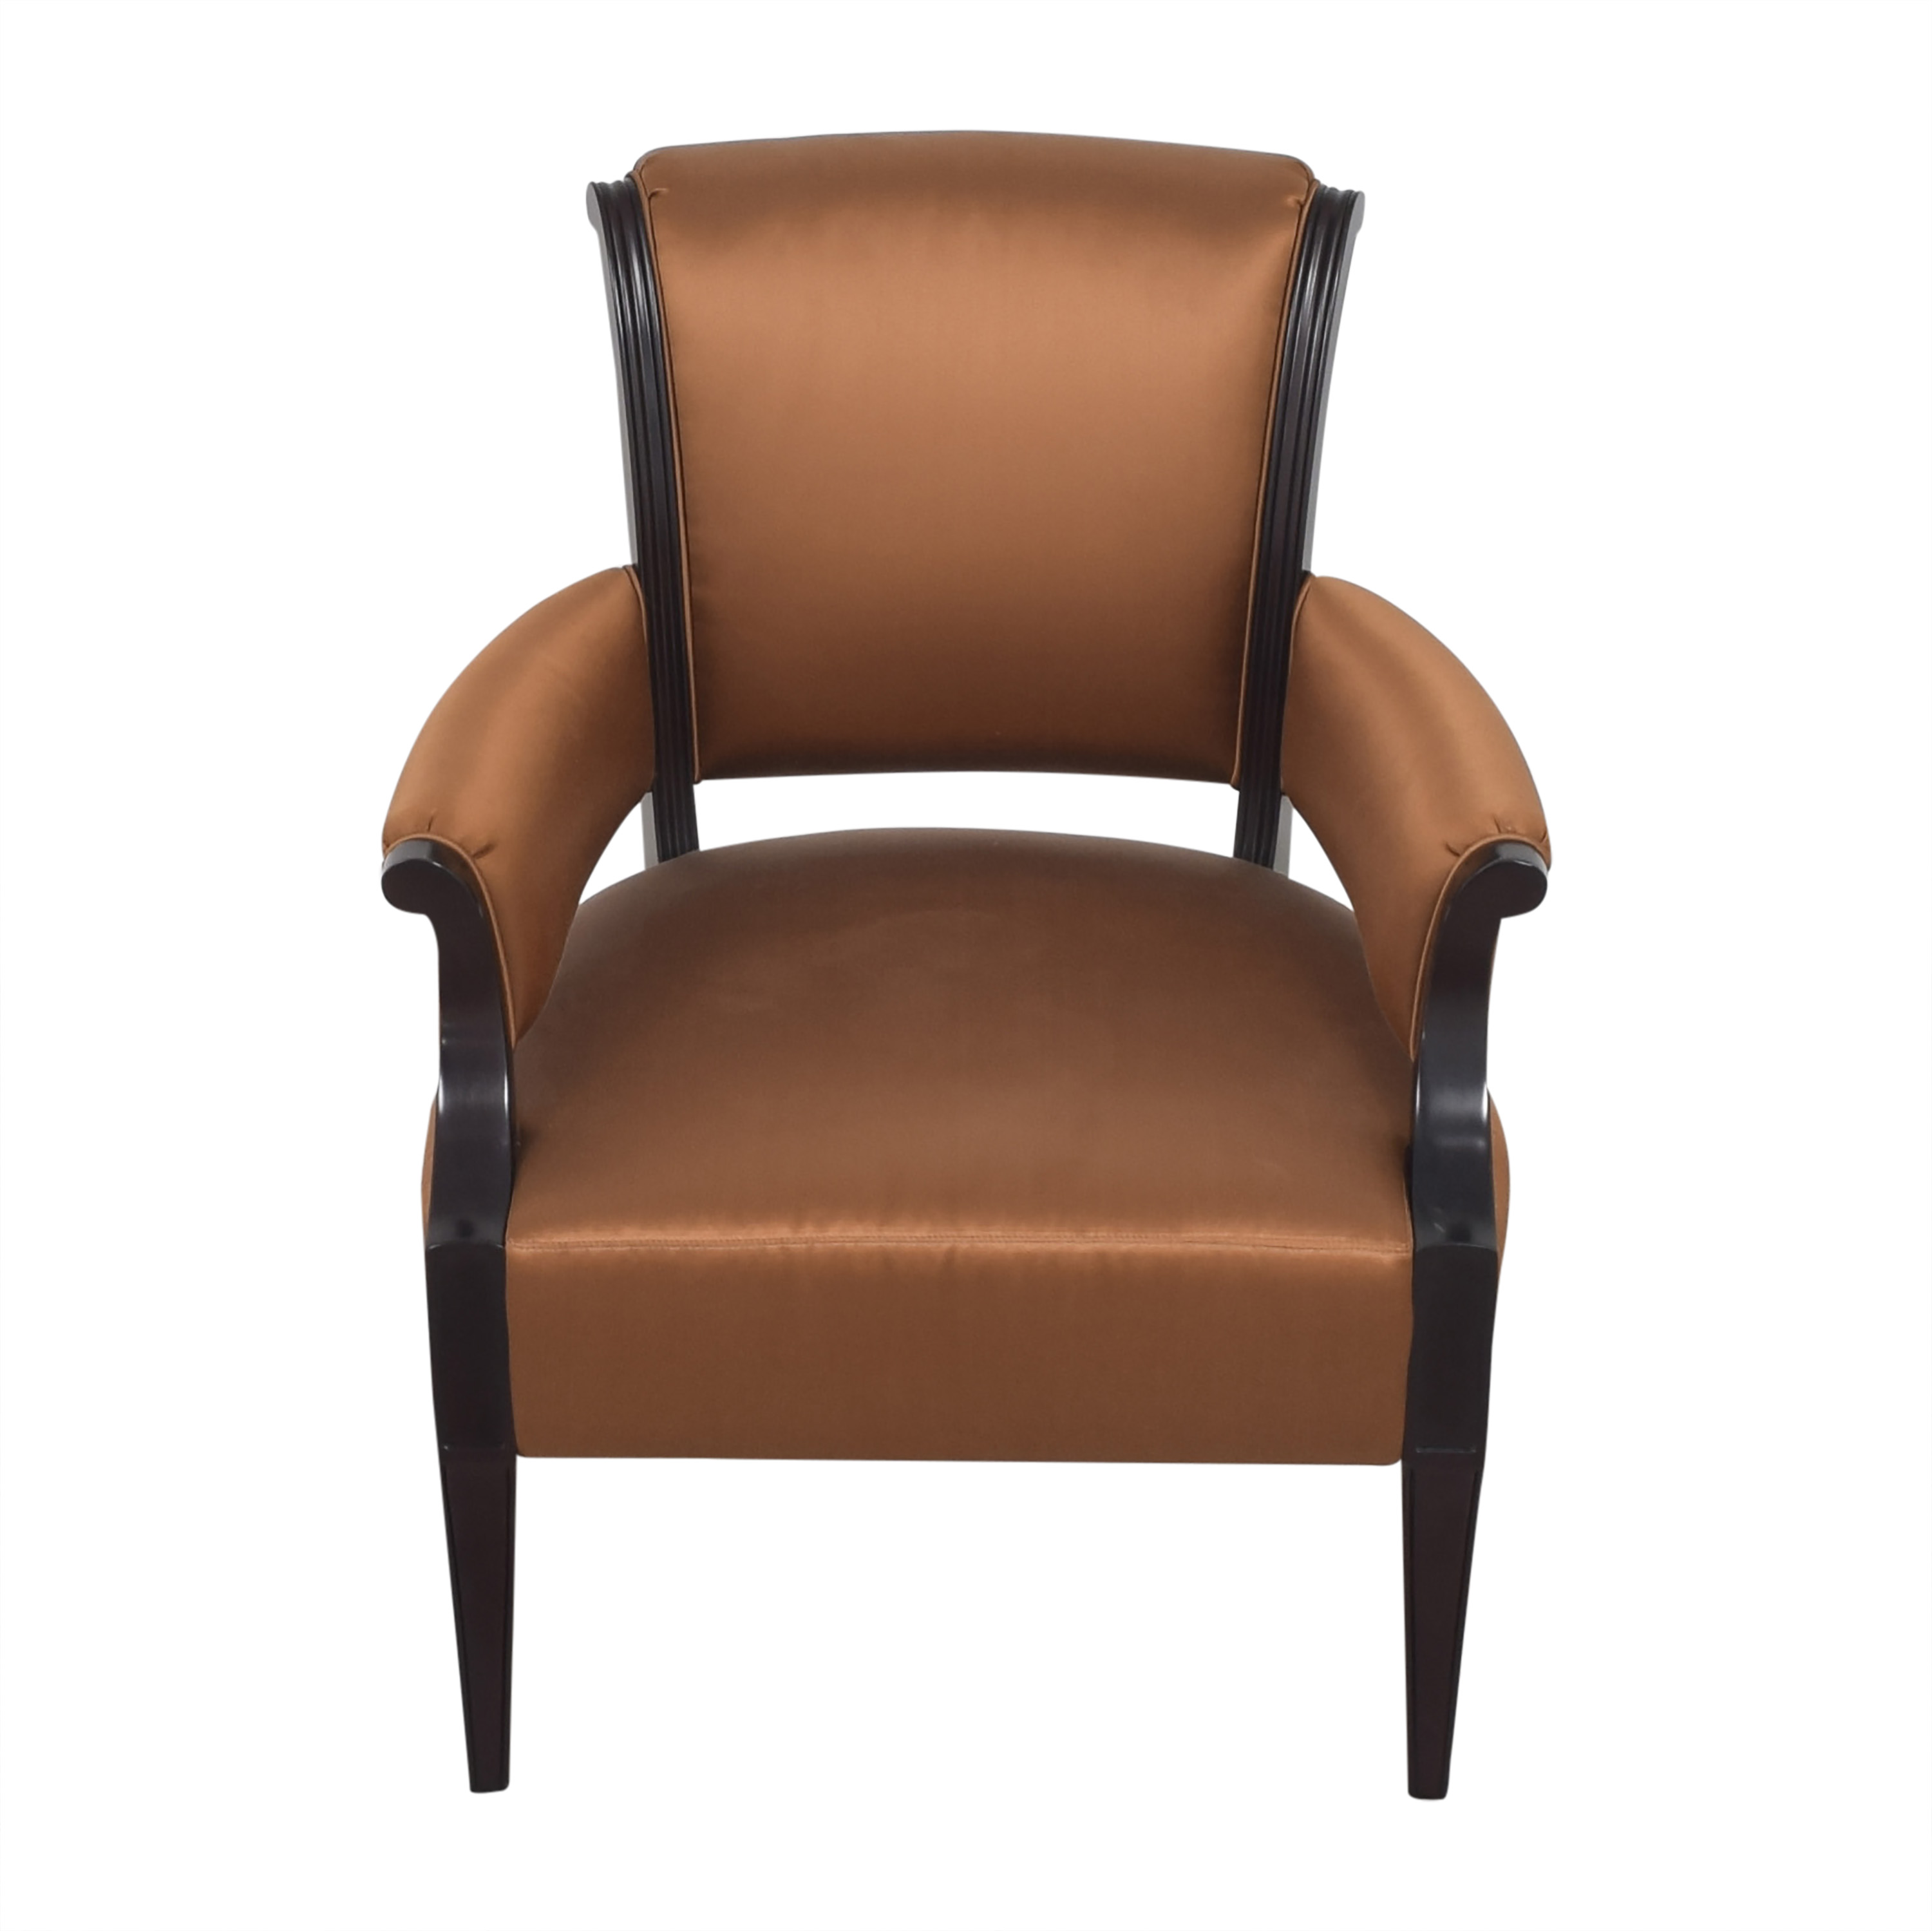 buy Baker Furniture Barbara Barry Upholstered Chair Baker Furniture Accent Chairs